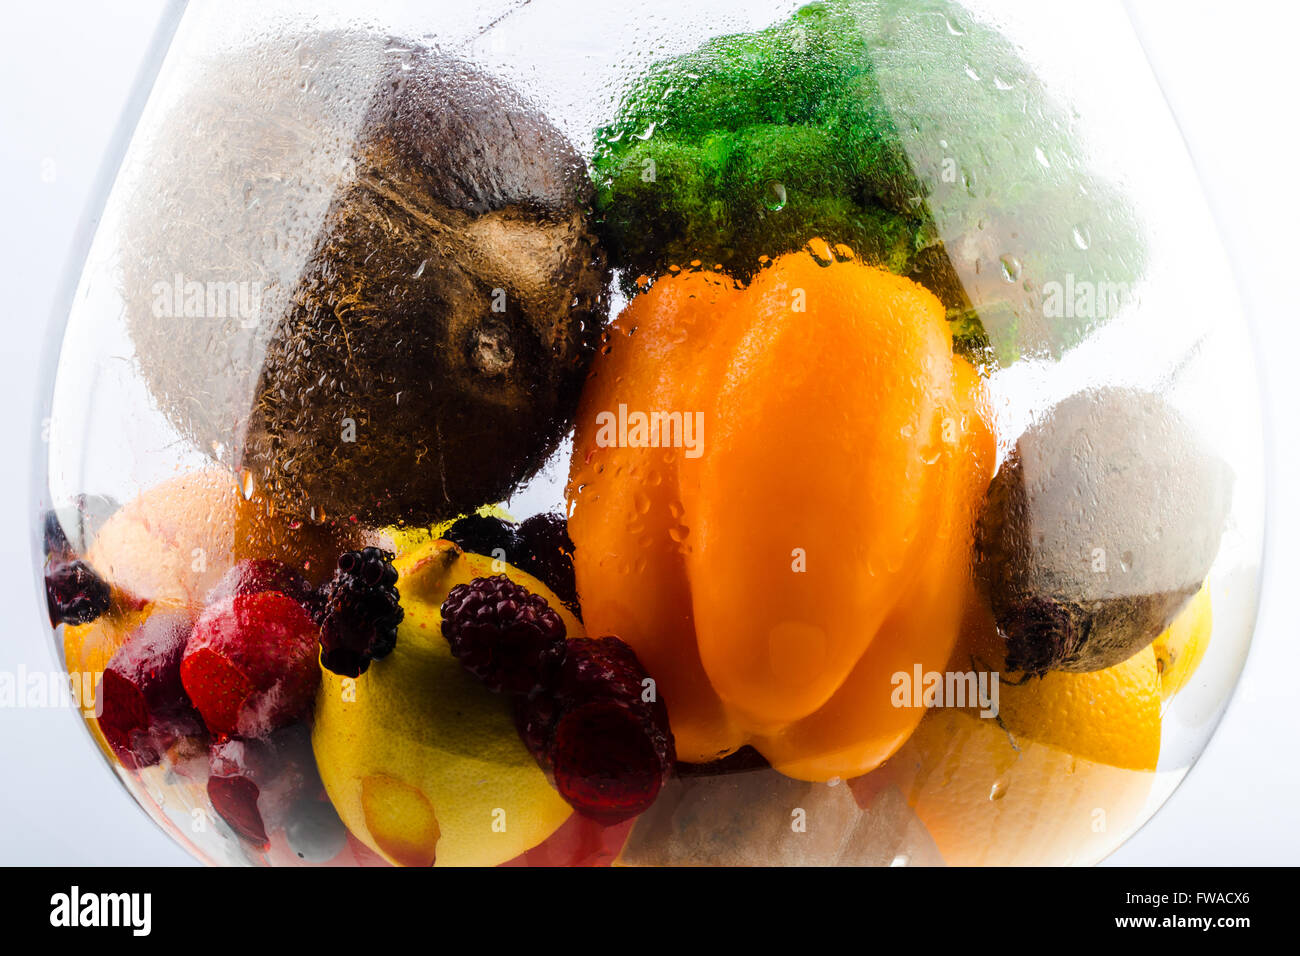 aquarium with healthy food, fruits, vegetables and berries (strawberries, strawberry, raspberry, coconut, broccoli, - Stock Image